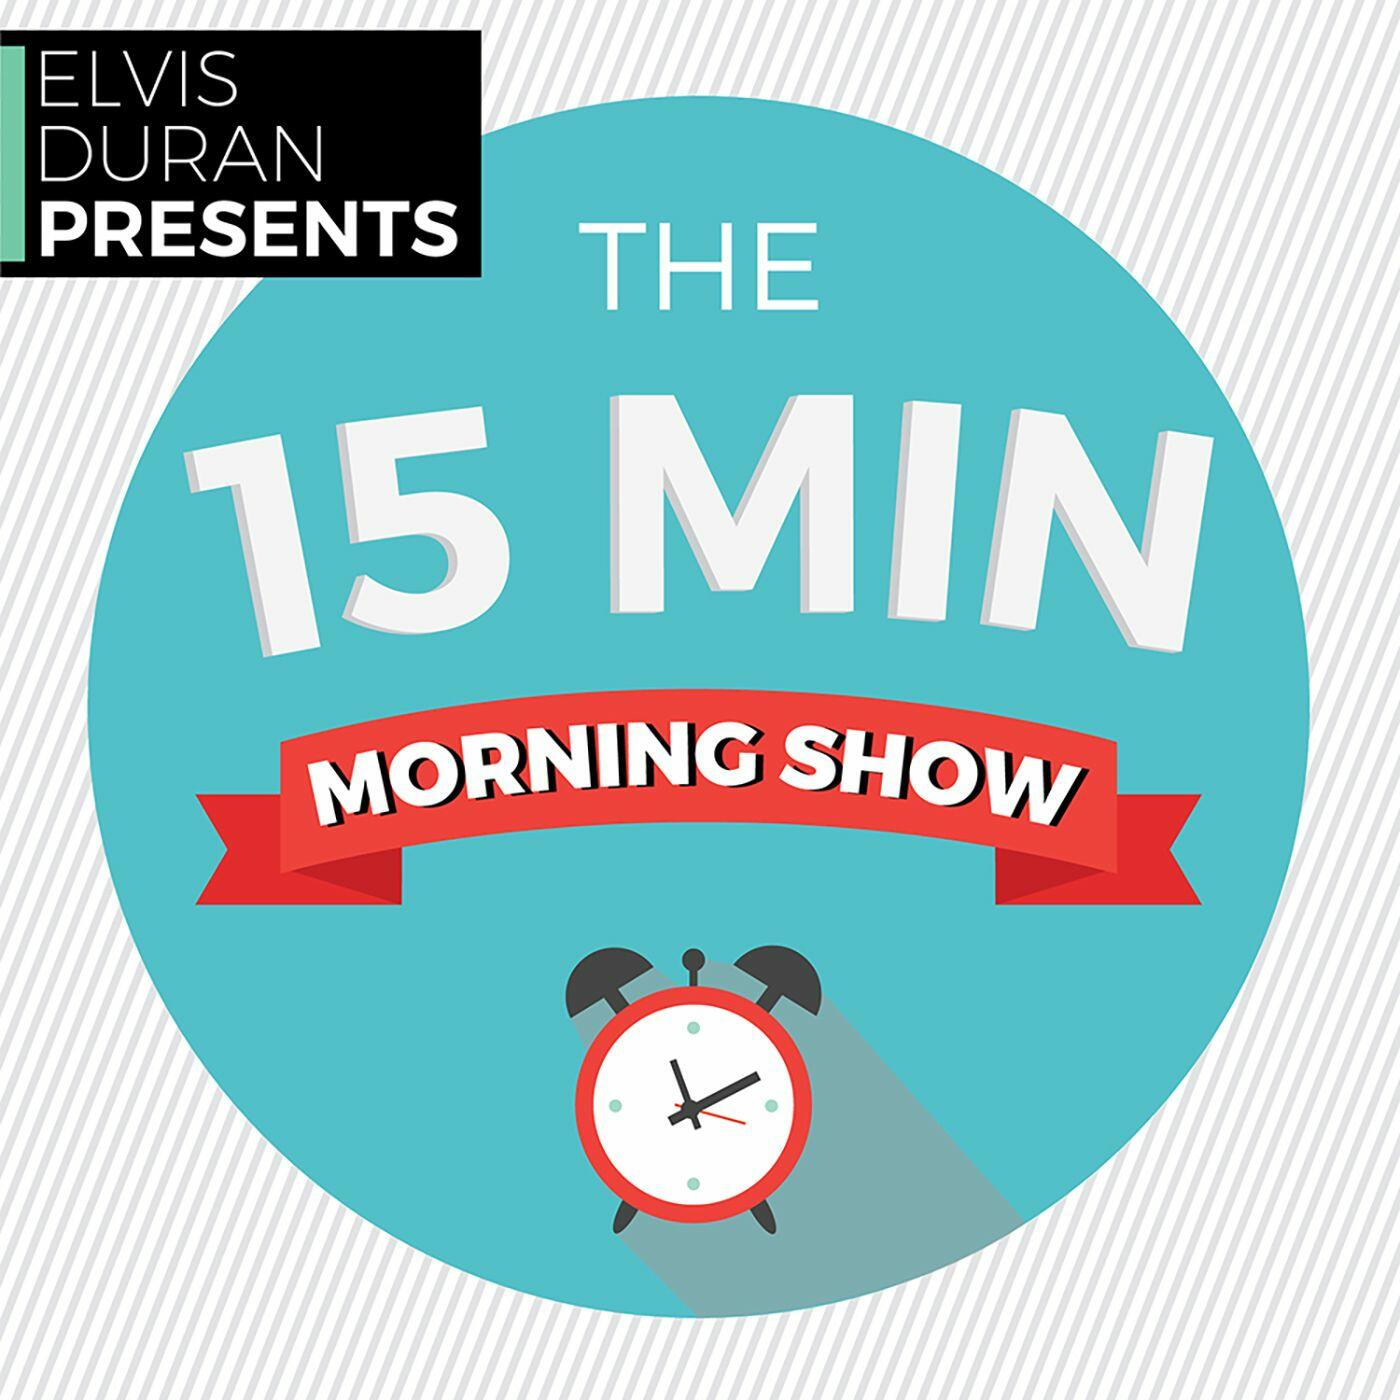 Elvis Duran Presents: The 15 Minute Morning Show